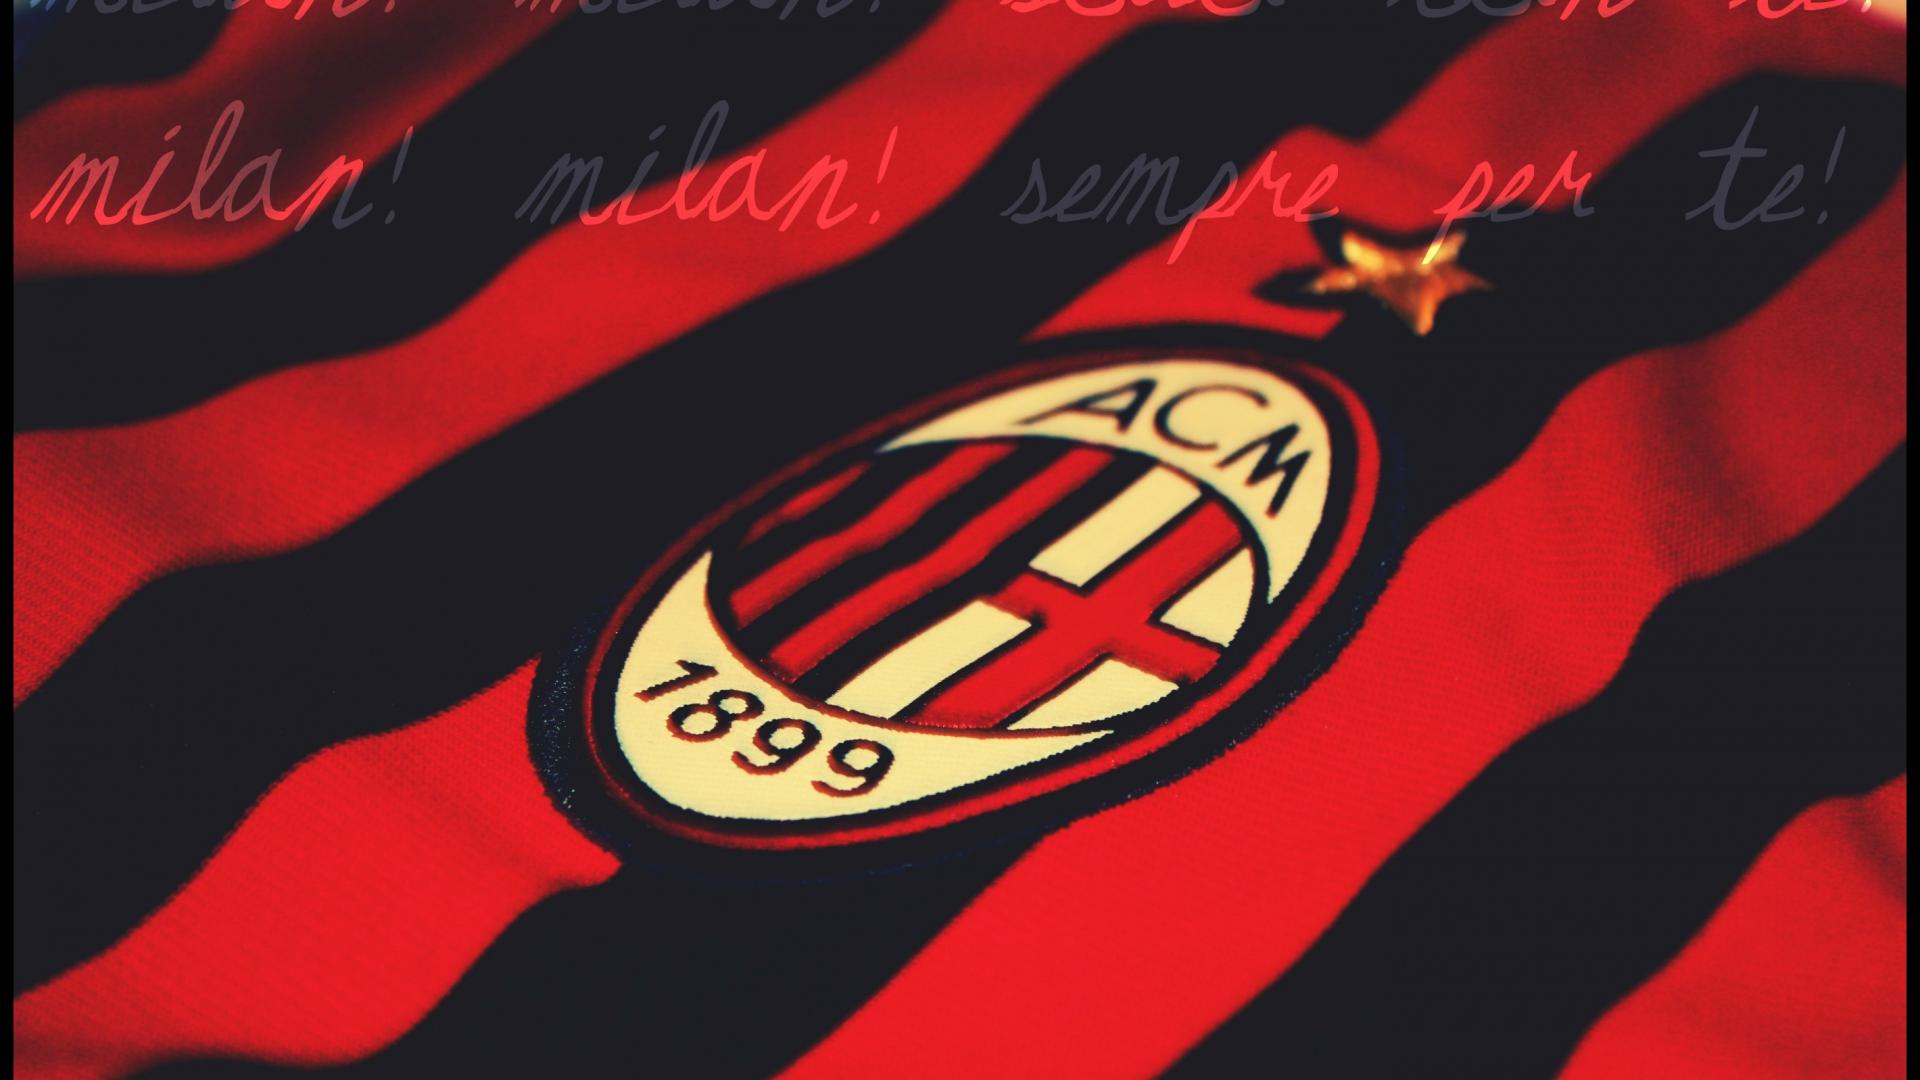 Fashion ac milan wallpaper 65688 1920x1080